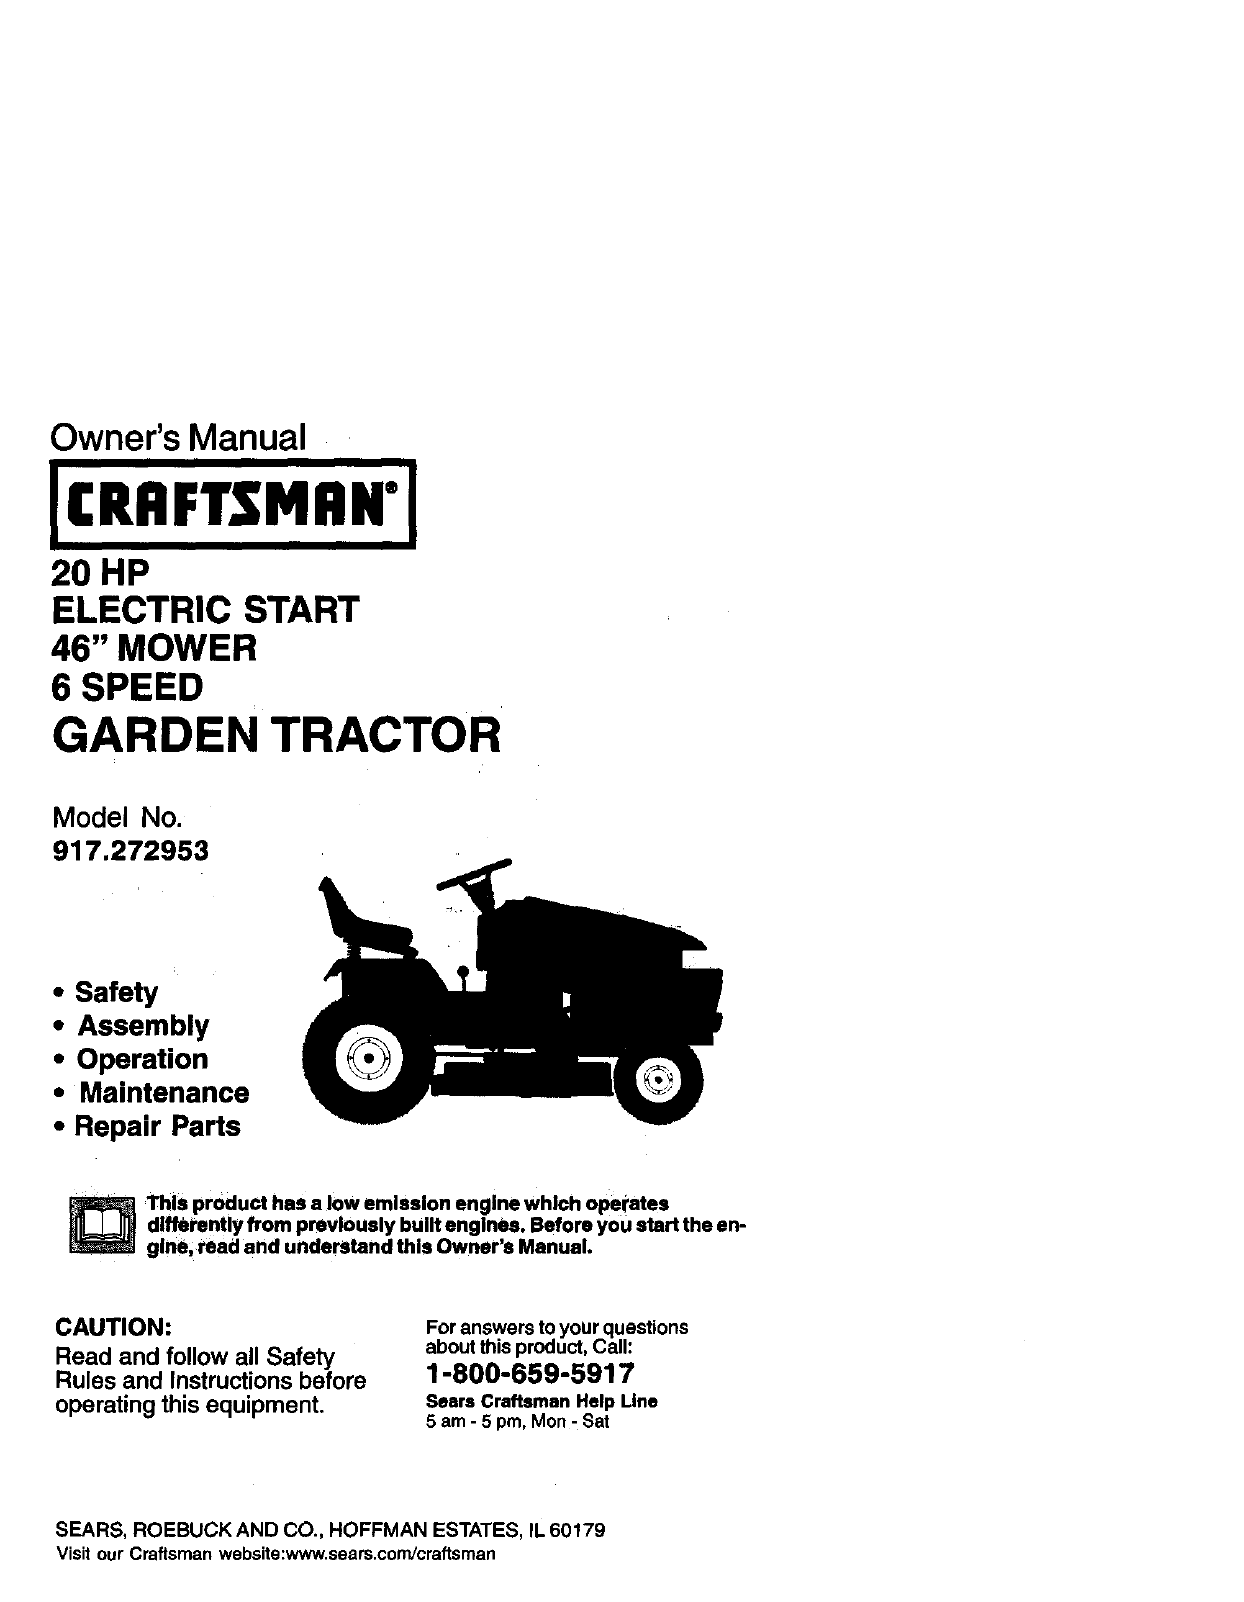 Craftsman 917272953 User Manual Tractor Manuals And Guides L0101144 Case Ingersoll 446 Wiring Diagram